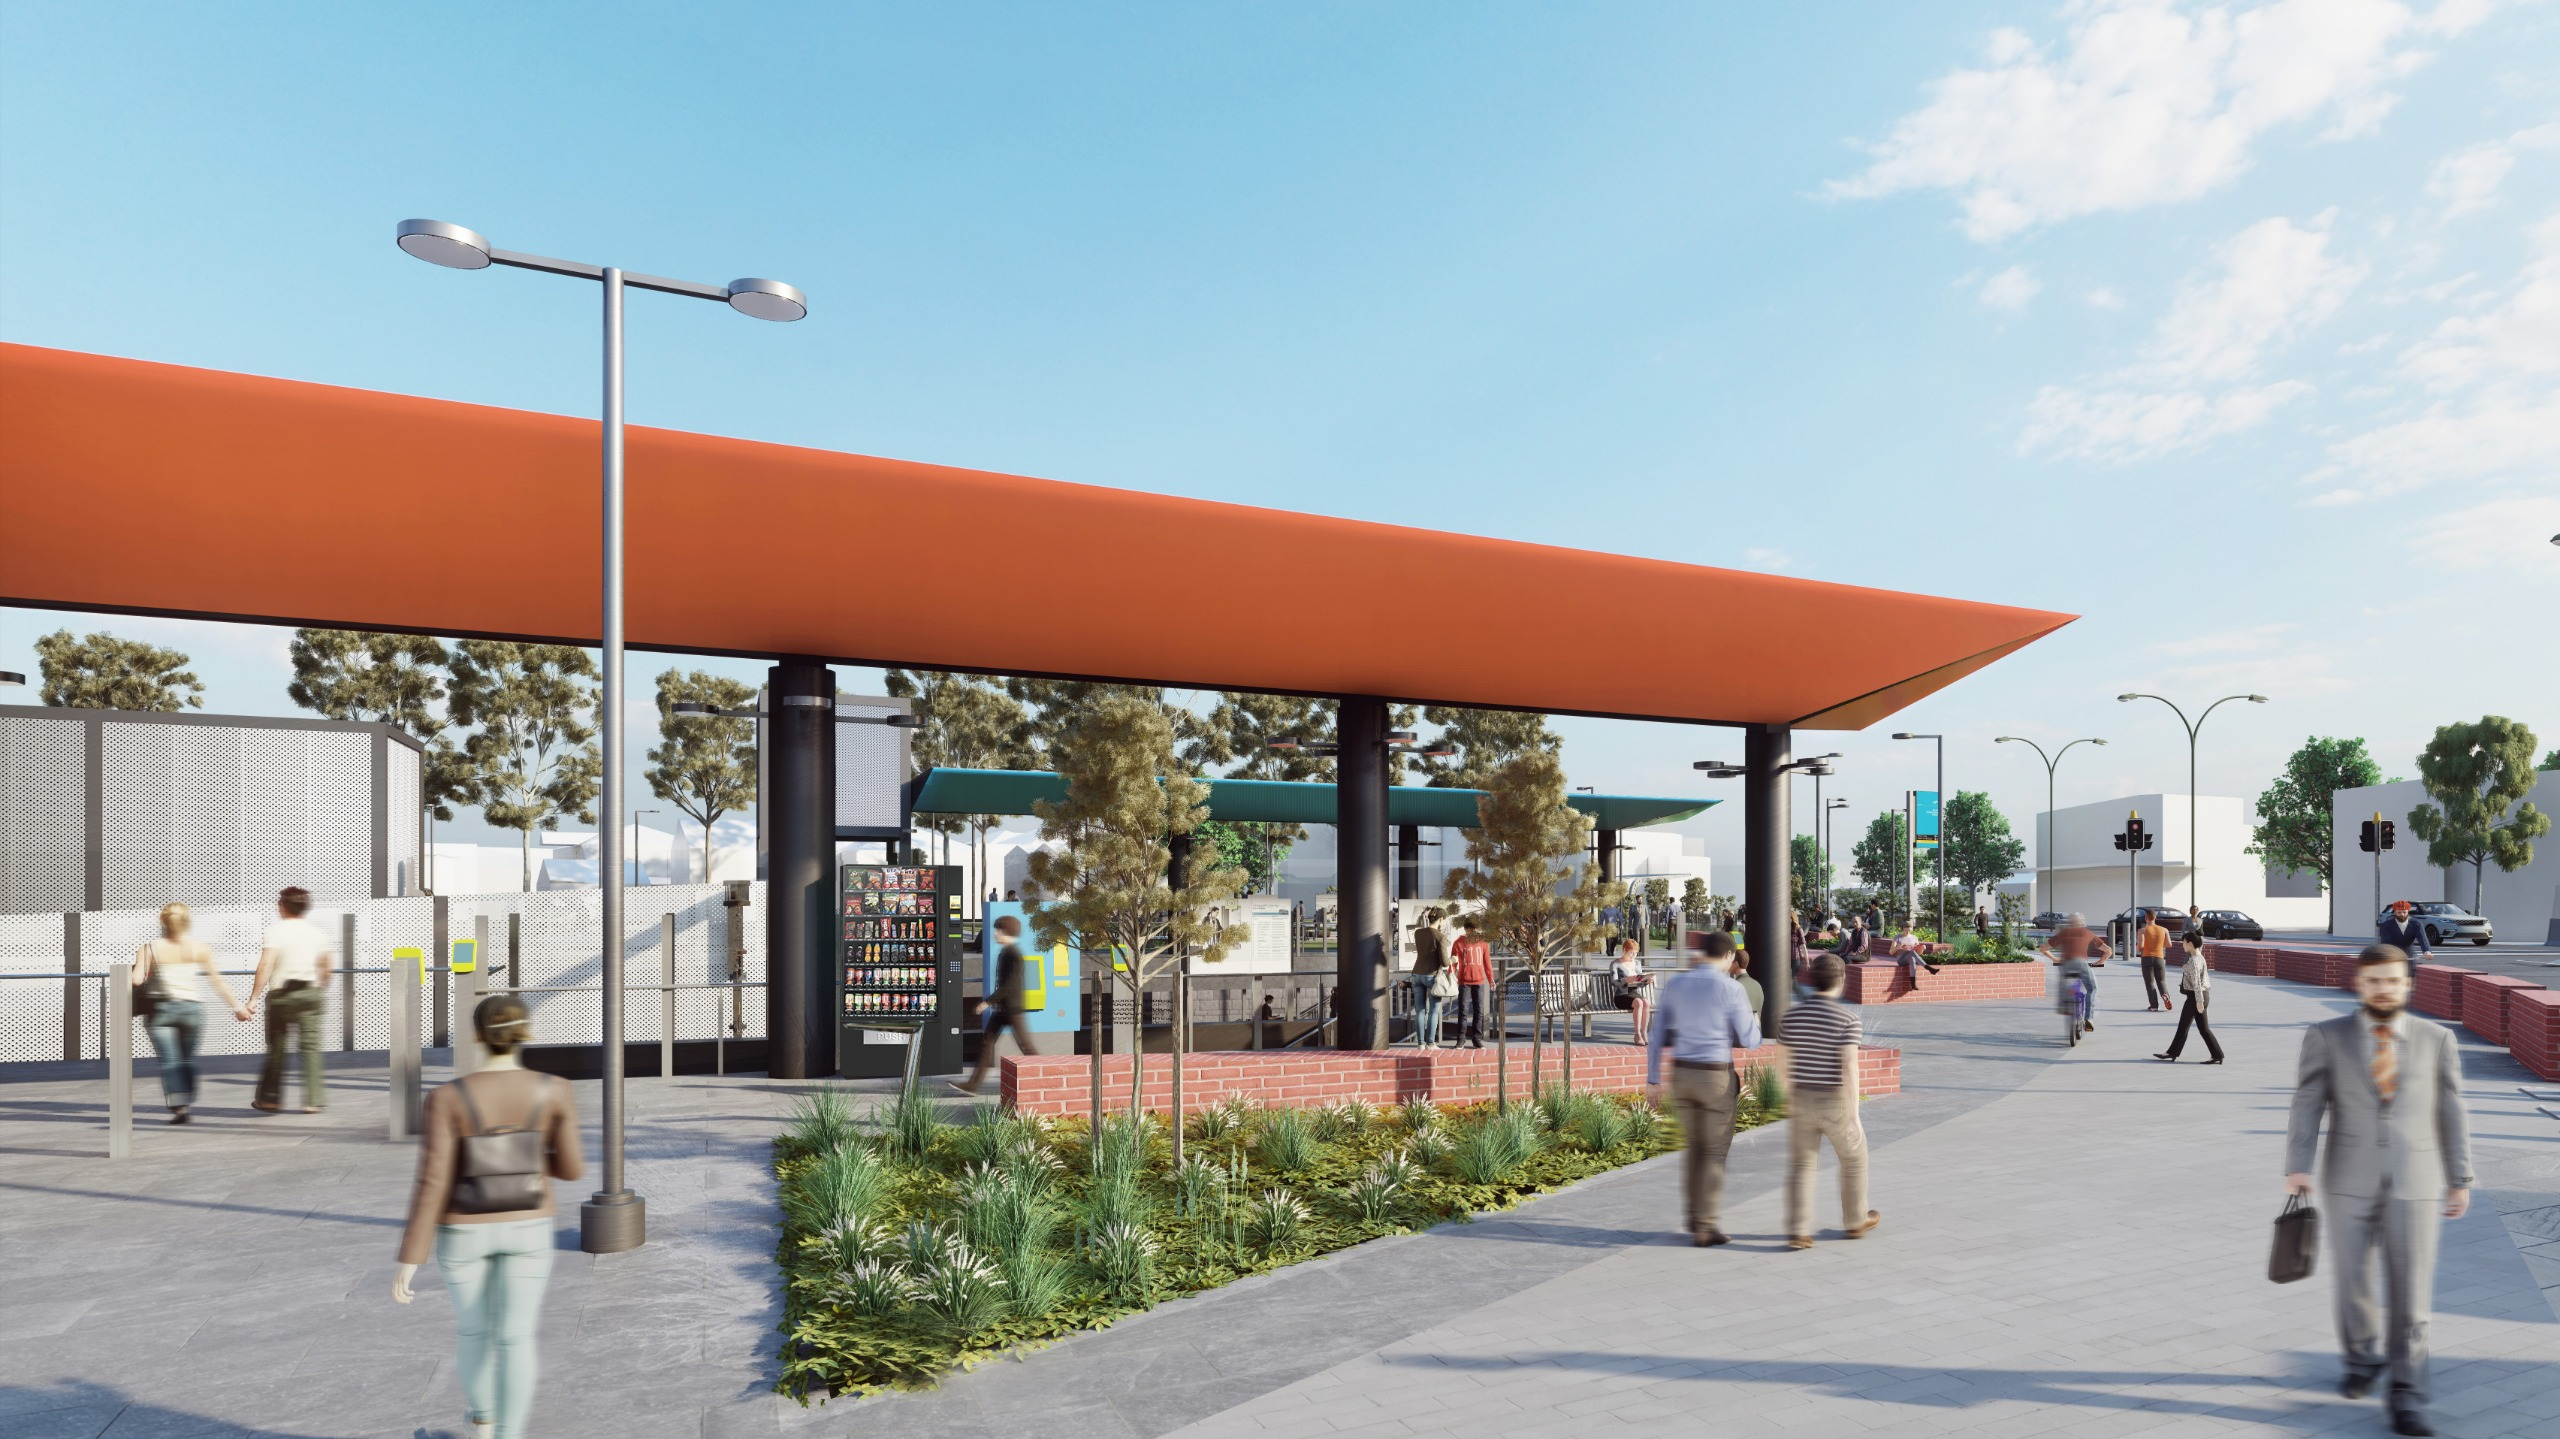 The station forecourt will feature large planter boxes that double as seating